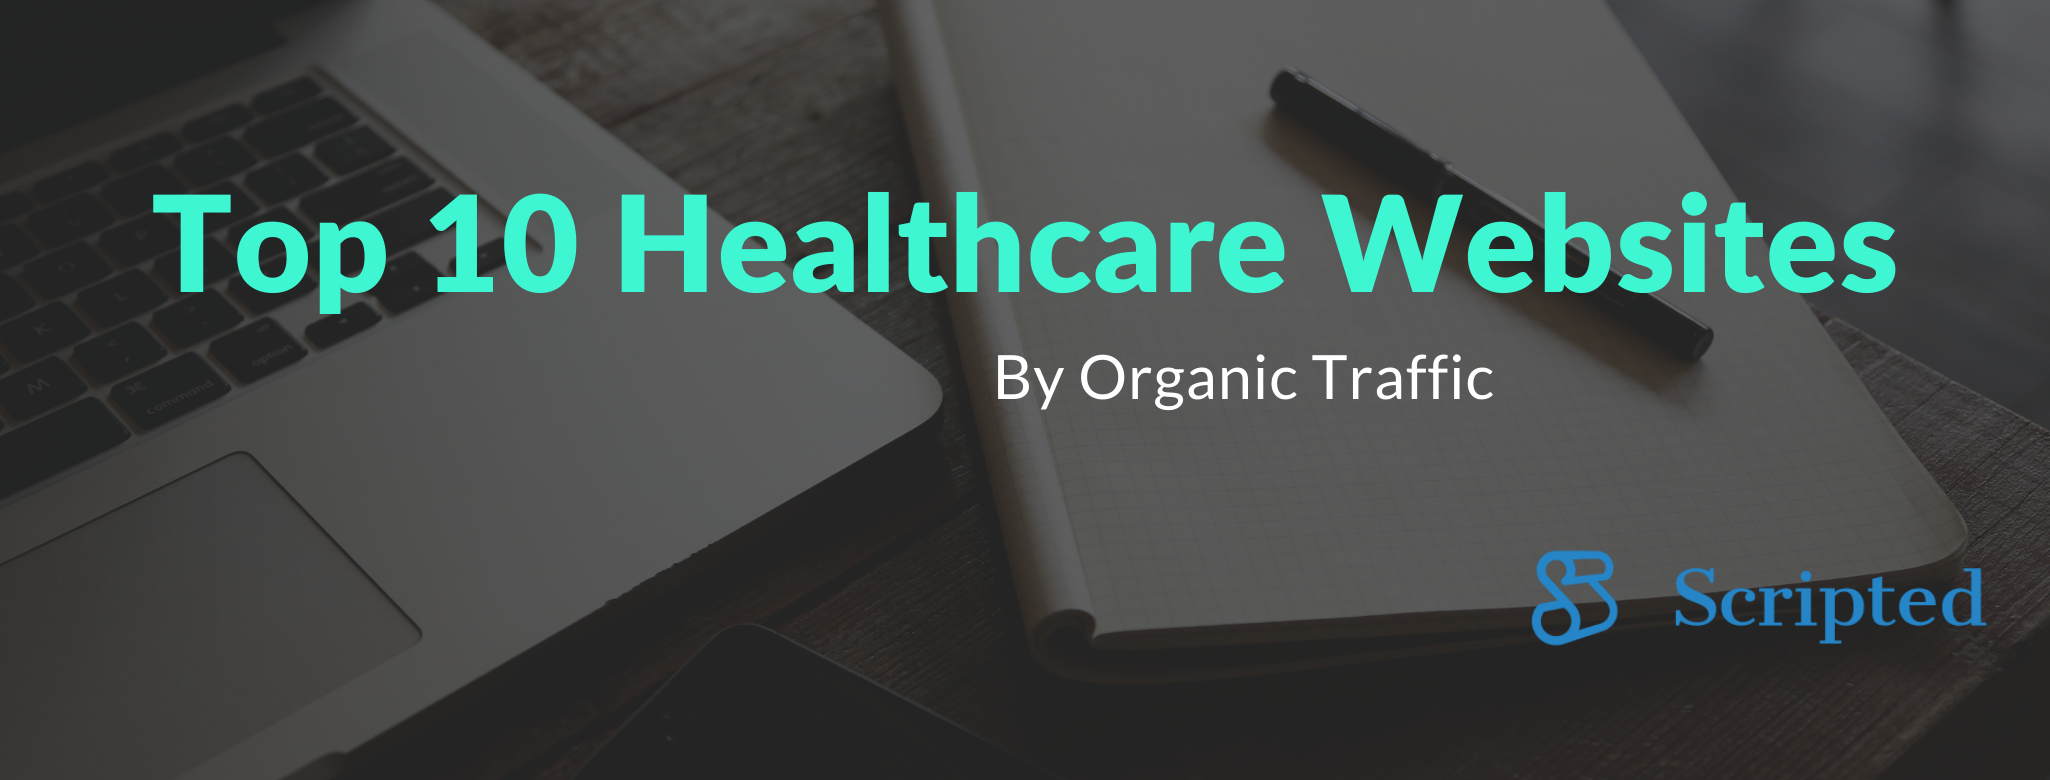 Top 10 Healthcare Websites by Organic Traffic